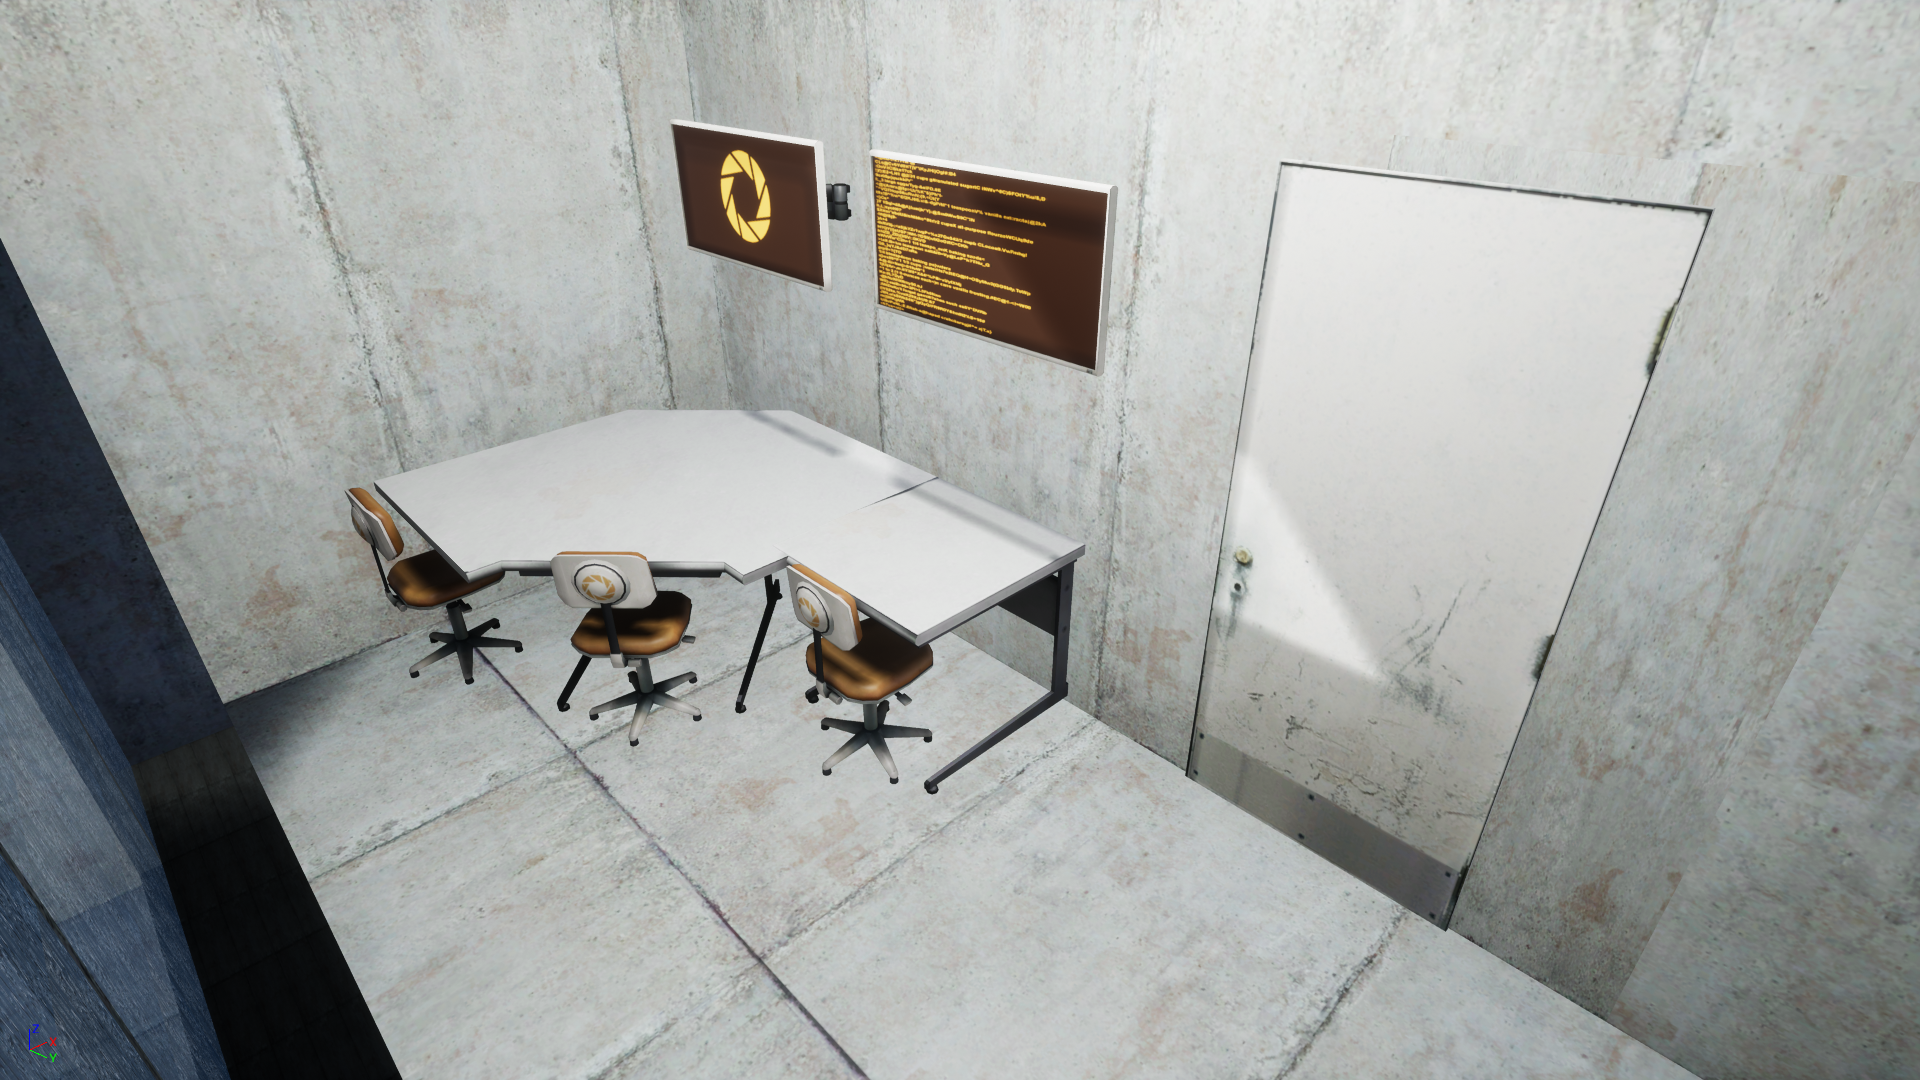 Observation room near the spawn zone from the first level of Portal Remastered, on the 22nd of July 2017.